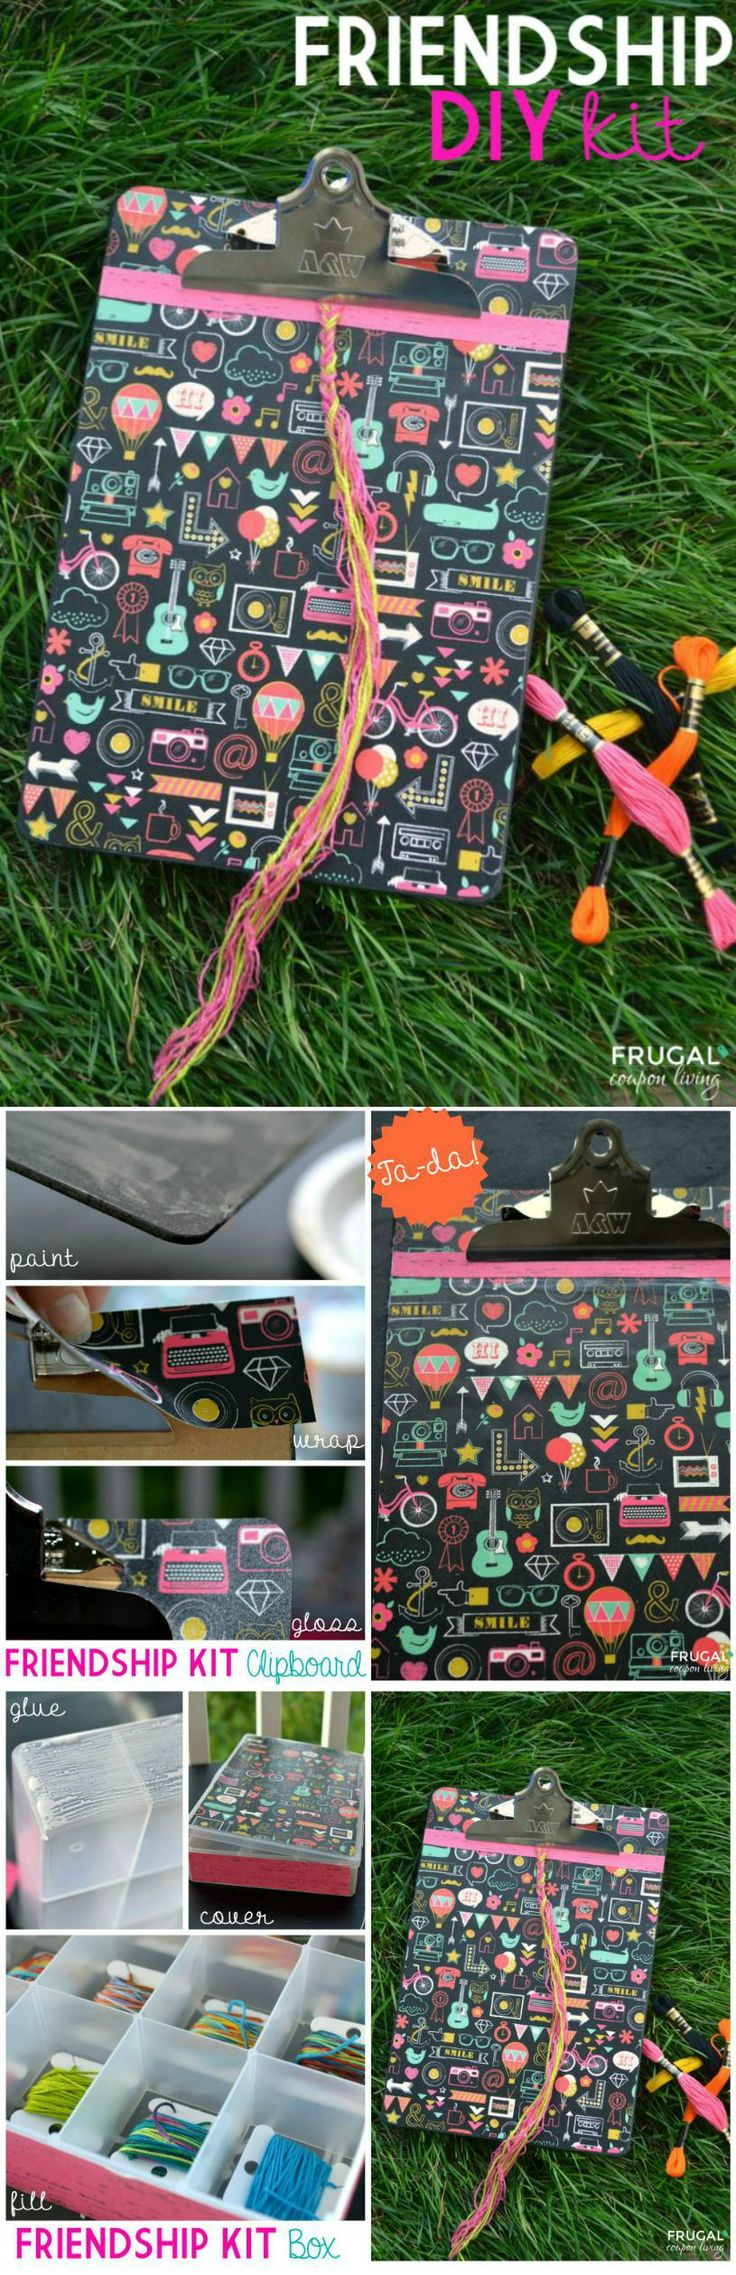 DIY Friendship Bracelet Kit Tutorial - homemade kit with clipboard and storage box directions on Frugal Coupon Living.